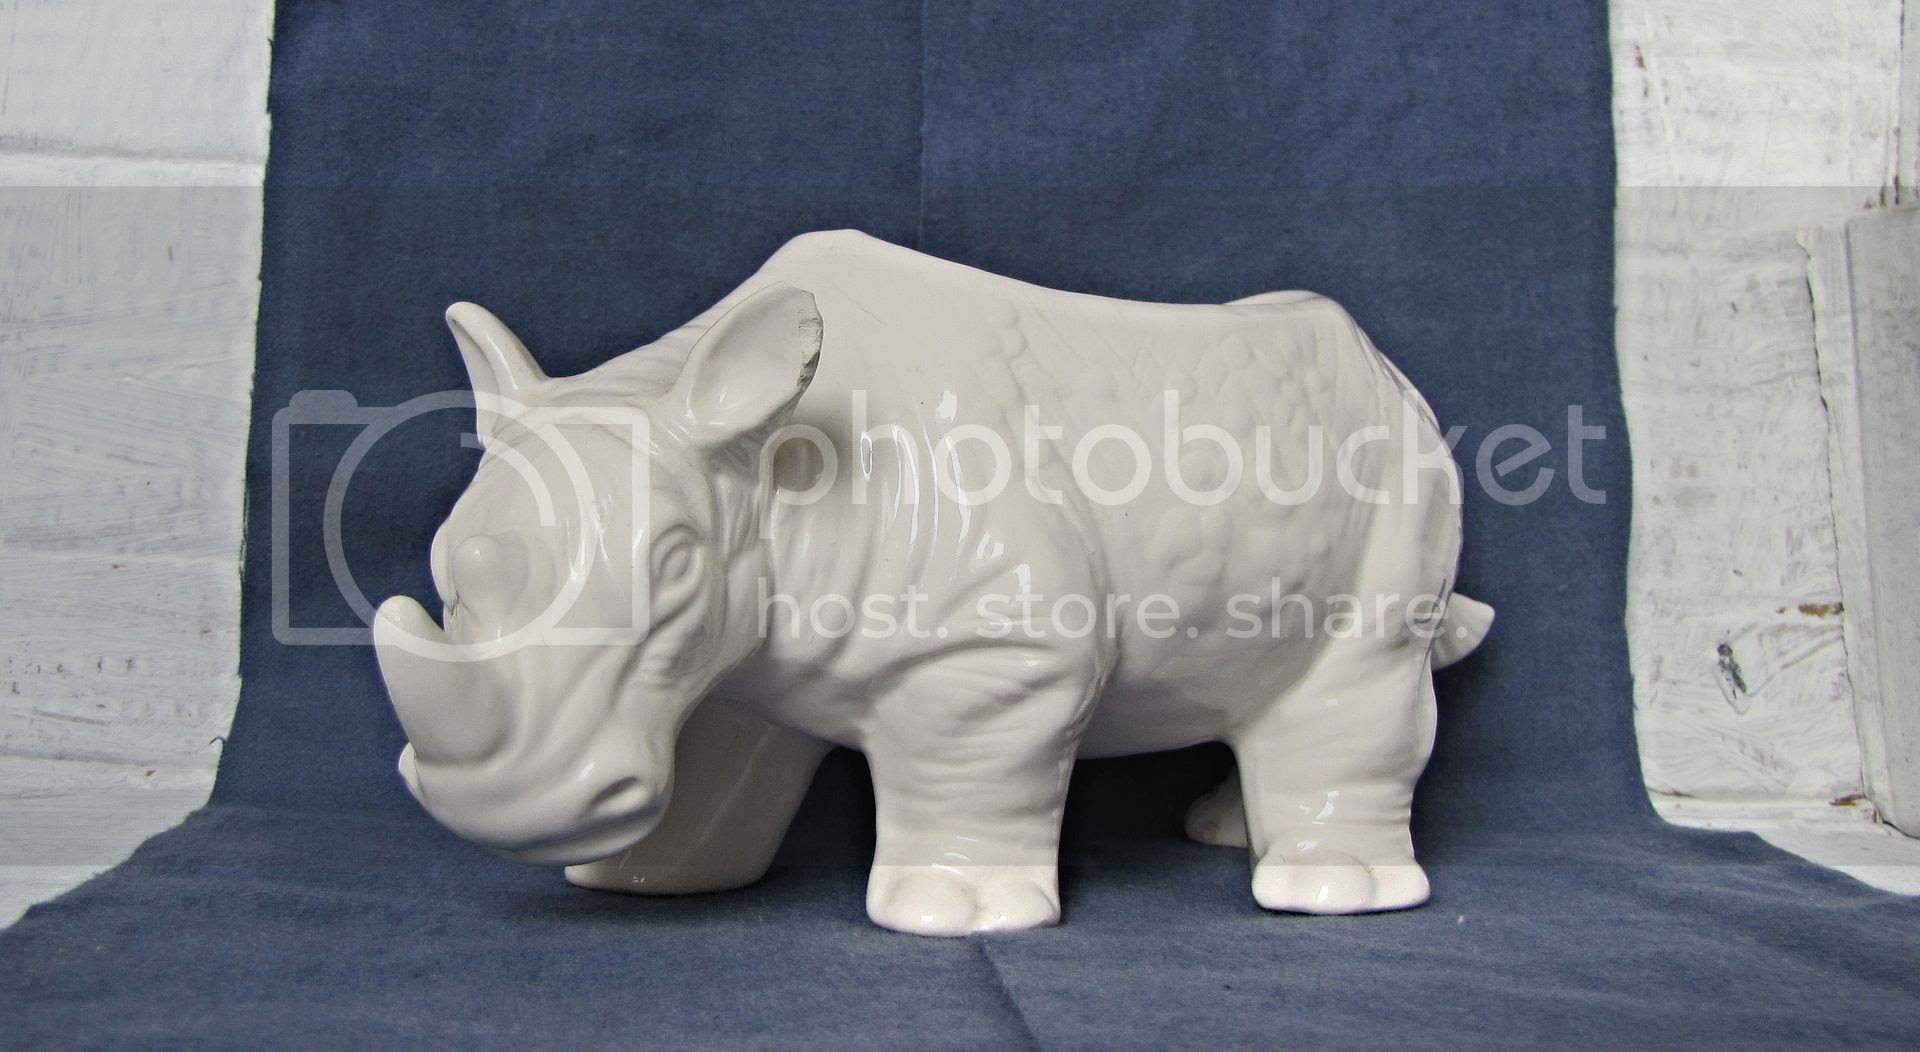 rhino pincushion from floral container - Indietutes.blogspot.com photo 1b9f1896-97e9-4eba-a7c0-044b78b1774a.jpg